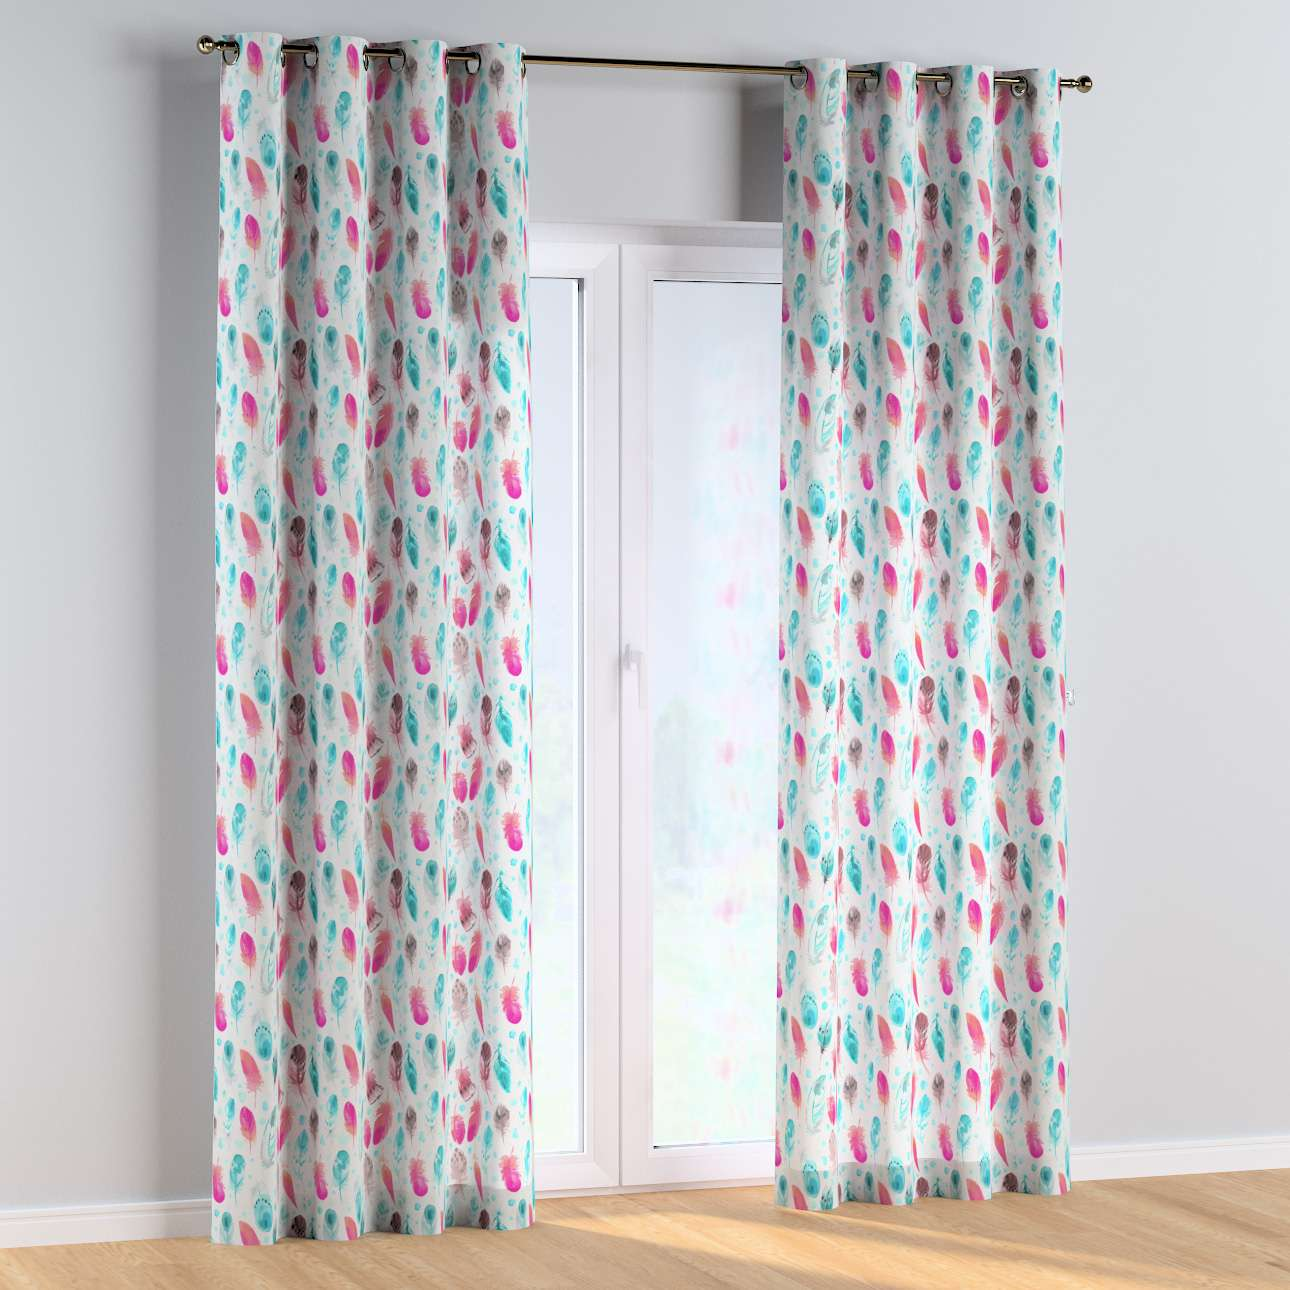 Eyelet curtains in collection Magic Collection, fabric: 500-17